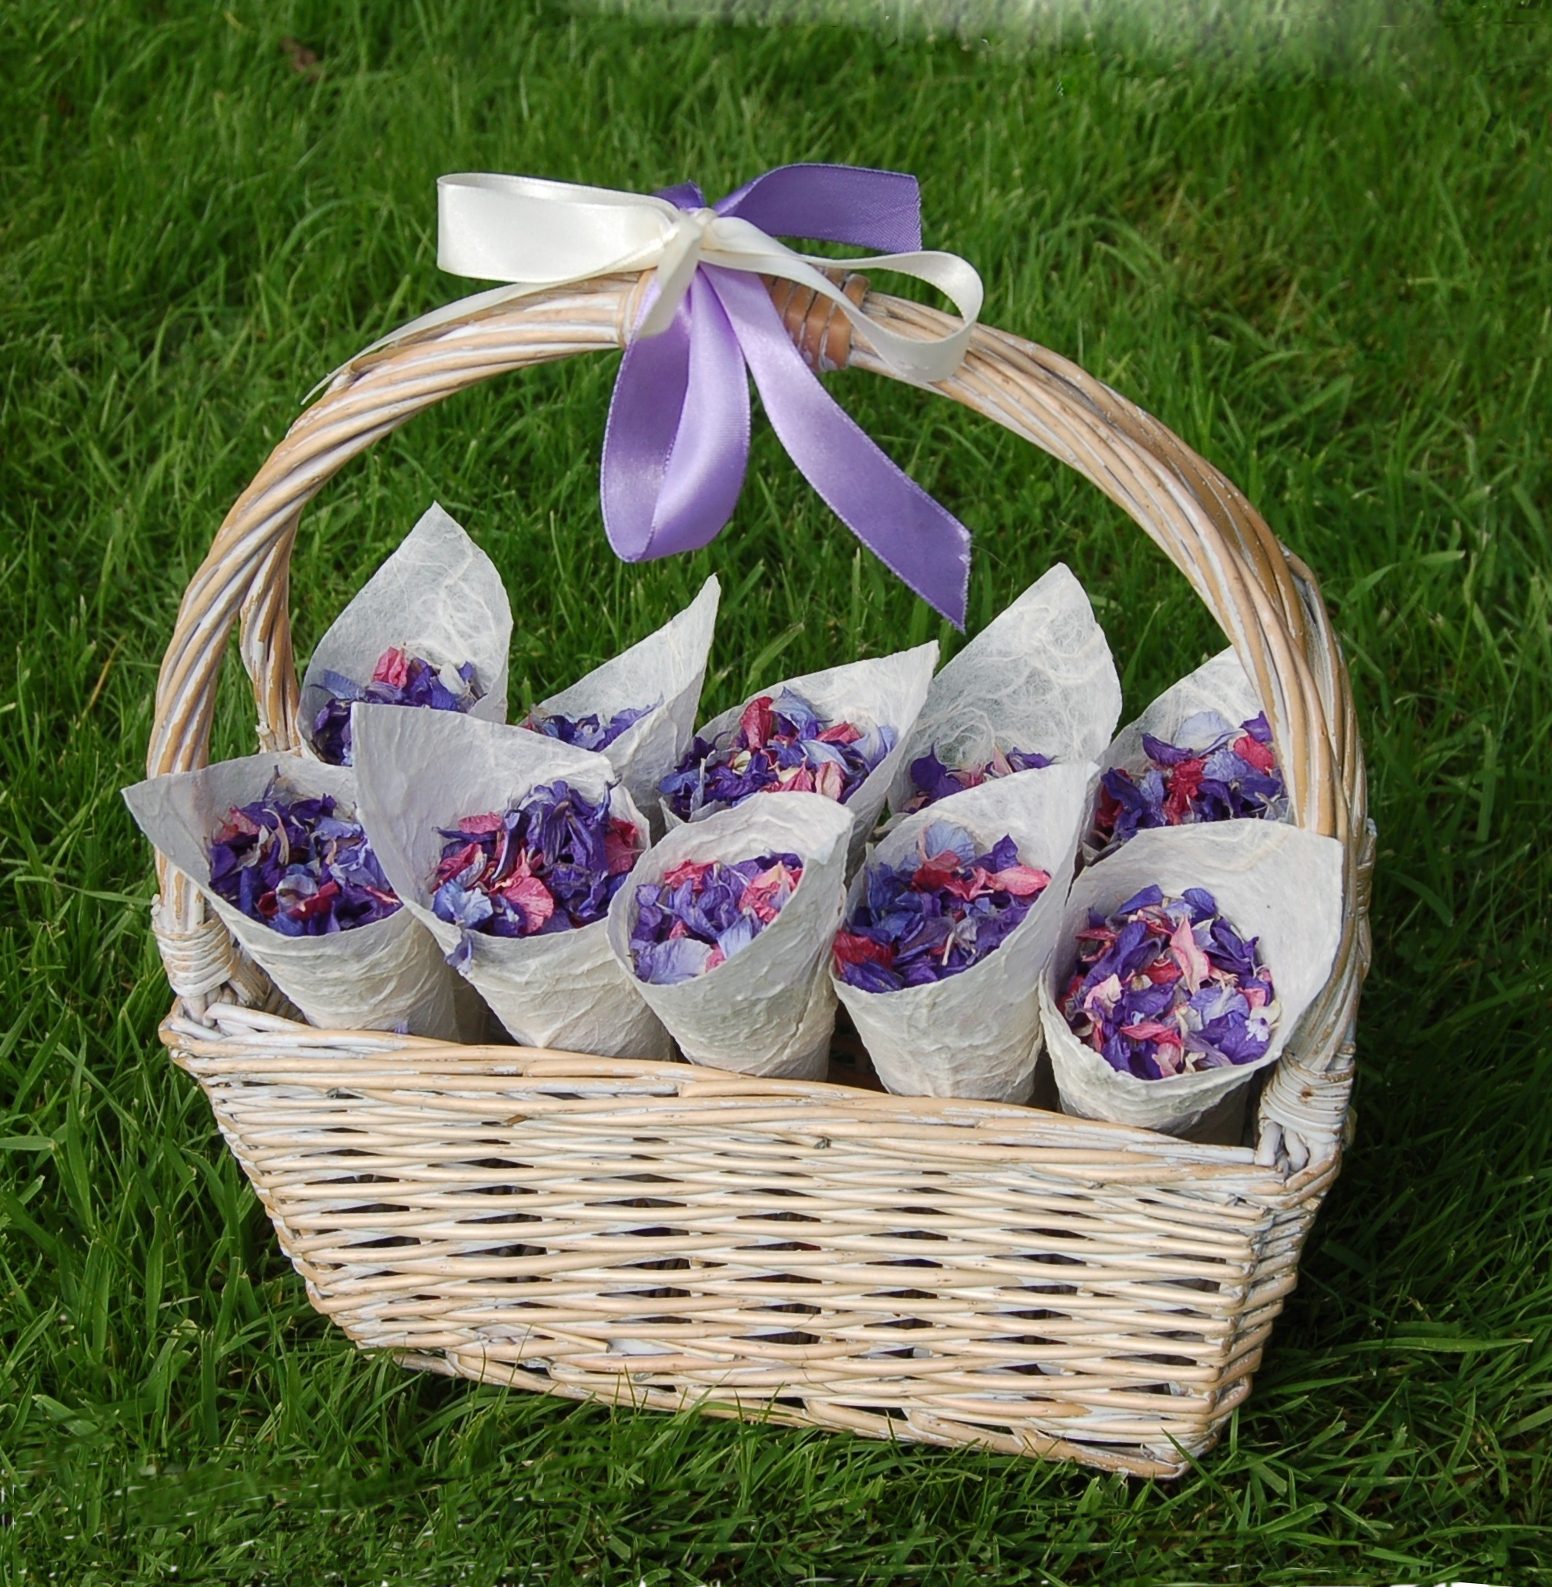 Wedding Baskets For Flower Petals : The confetti purple wedding themes ideas flowers